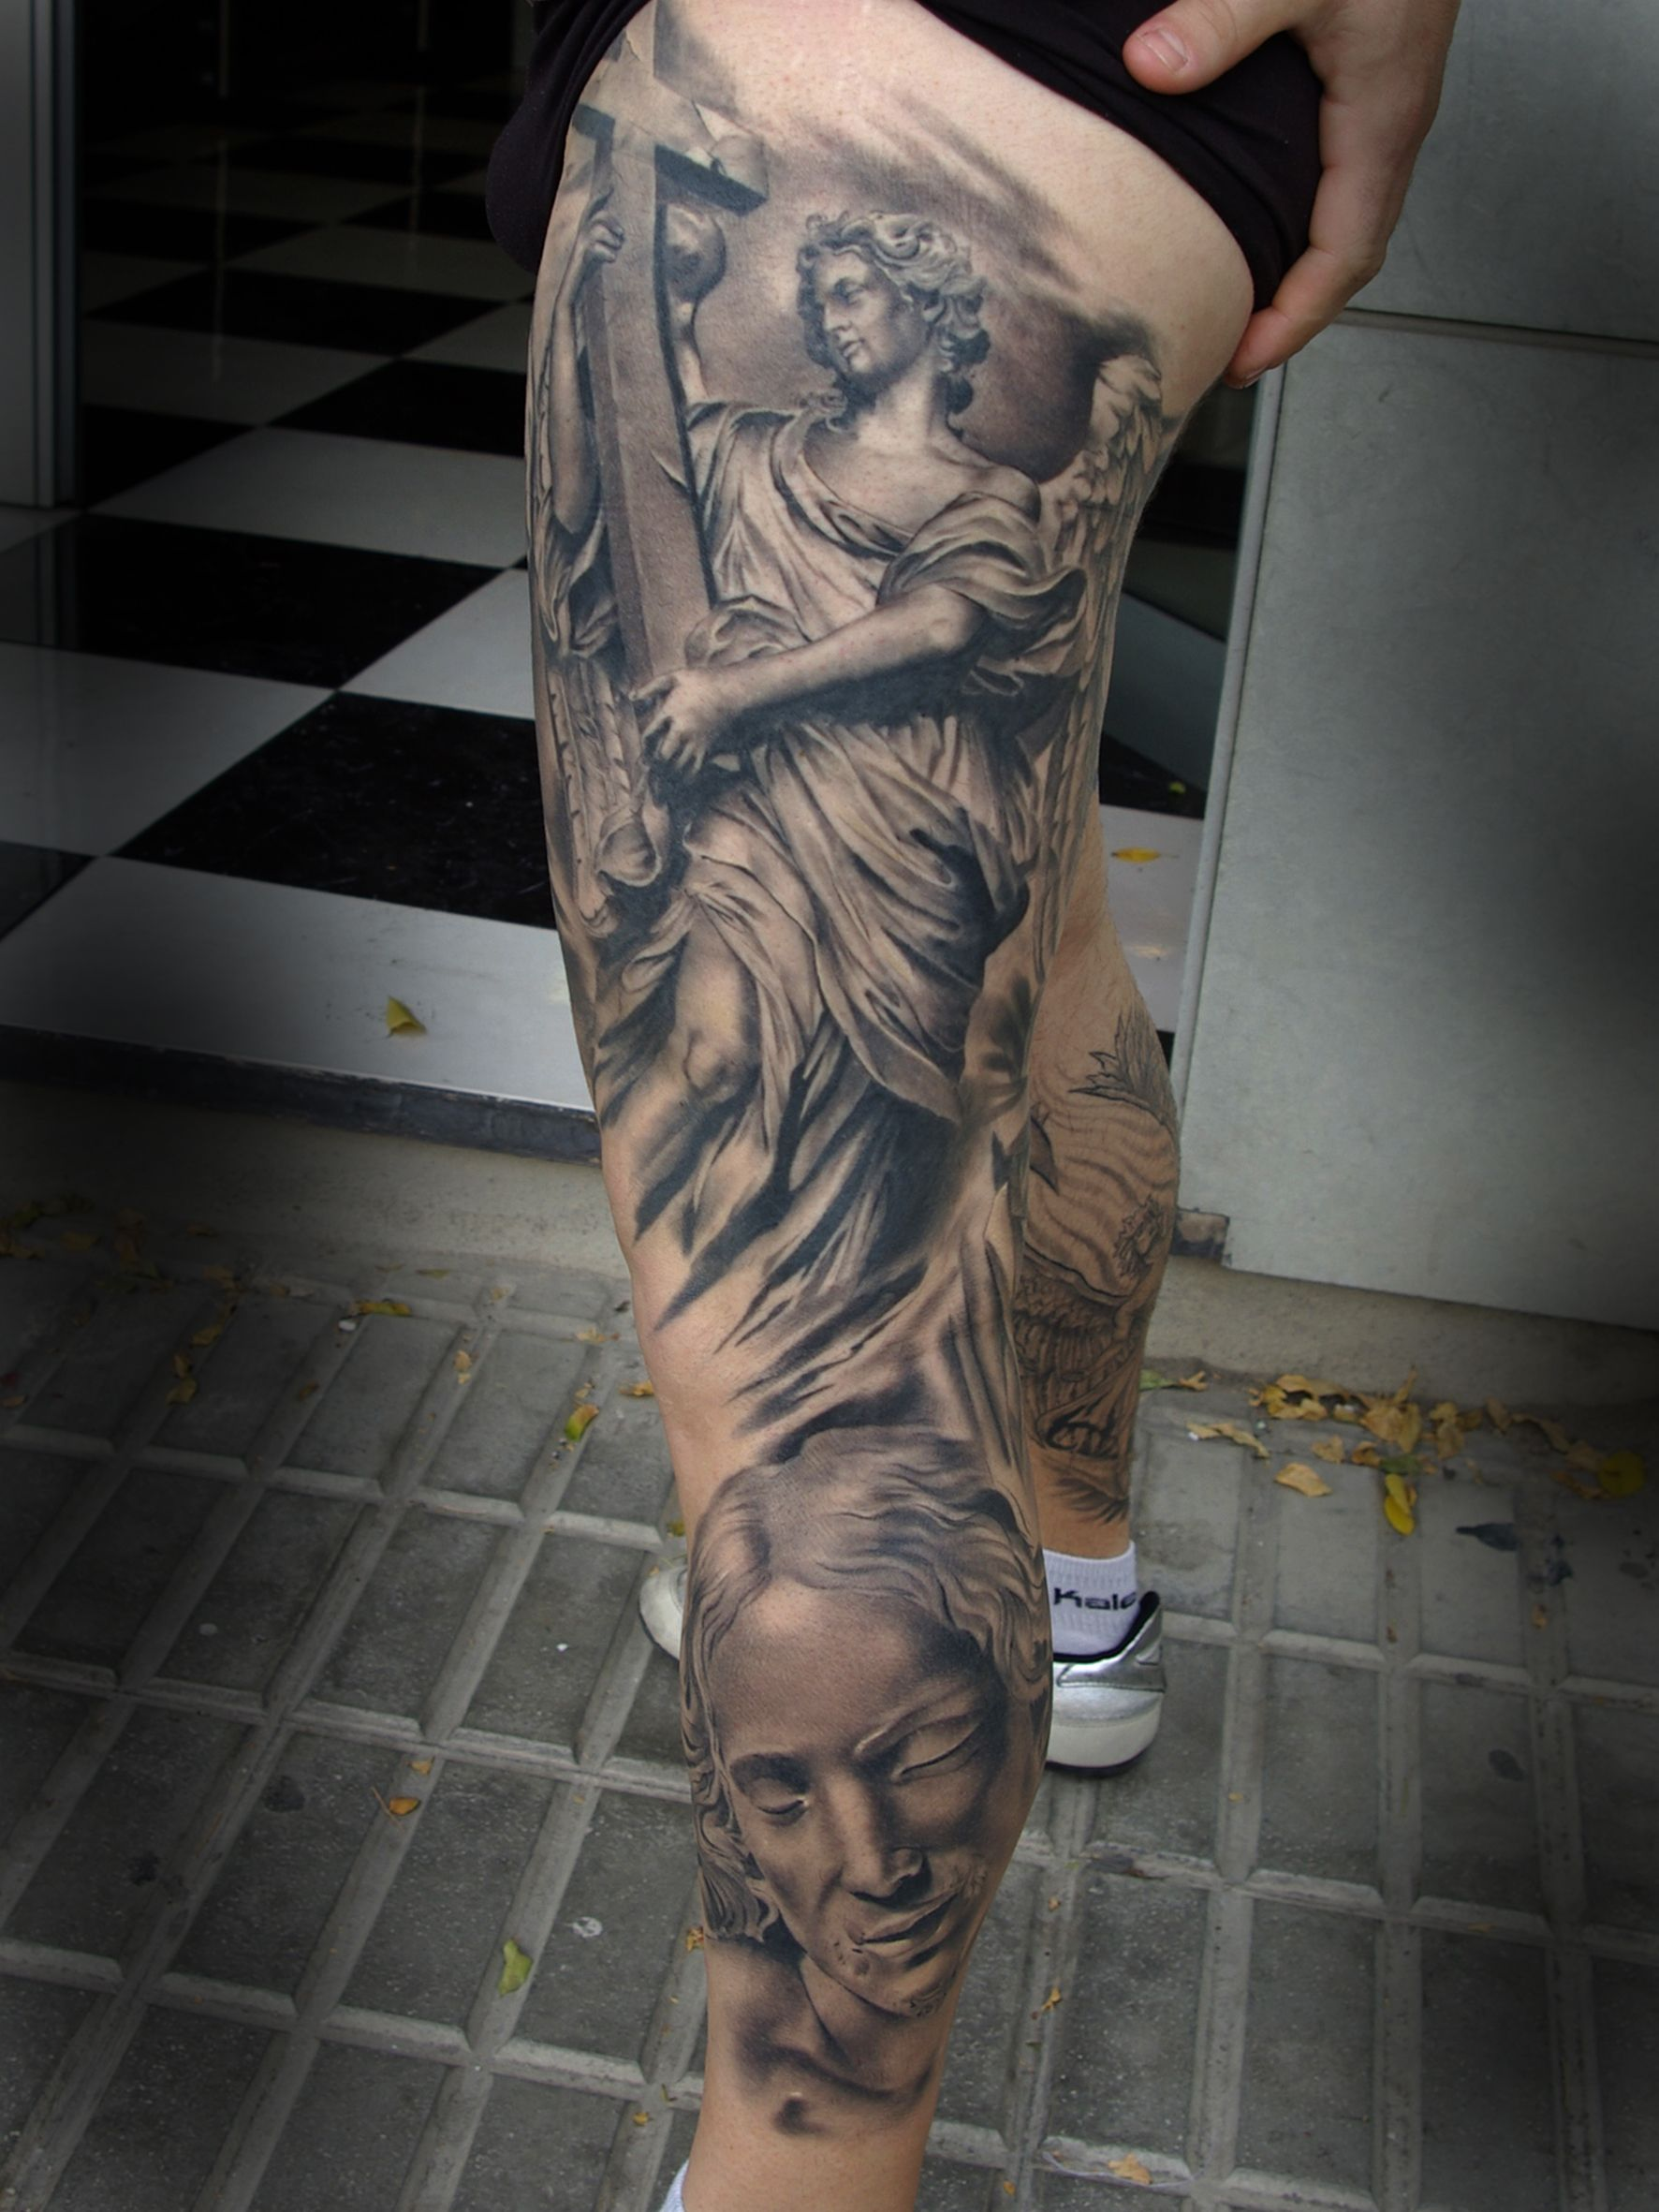 40 Perseus Tattoo Designs For Men – Greek Mythology Ink Ideas 40 Perseus Tattoo Designs For Men – Greek Mythology Ink Ideas new images